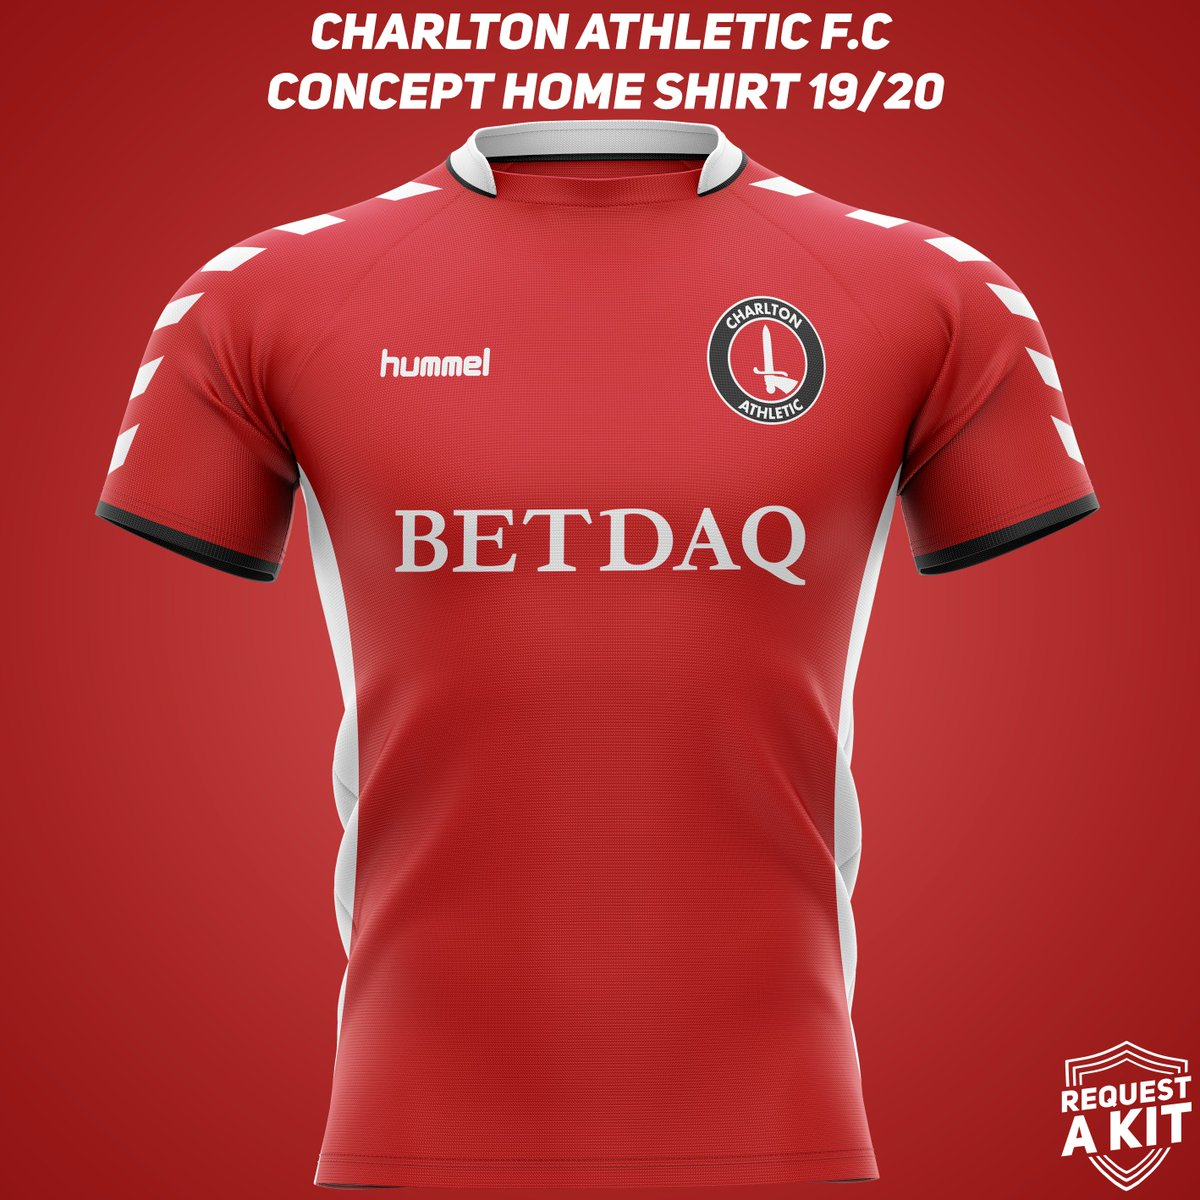 cd461e39ce415 ... Shirts 19/20 (requested by @OwenRice) #Charlton #cafc #addicks  #rolandout #WeWantOurCharltonBack #FM19 #wearethecommunity Download for  your Football ...